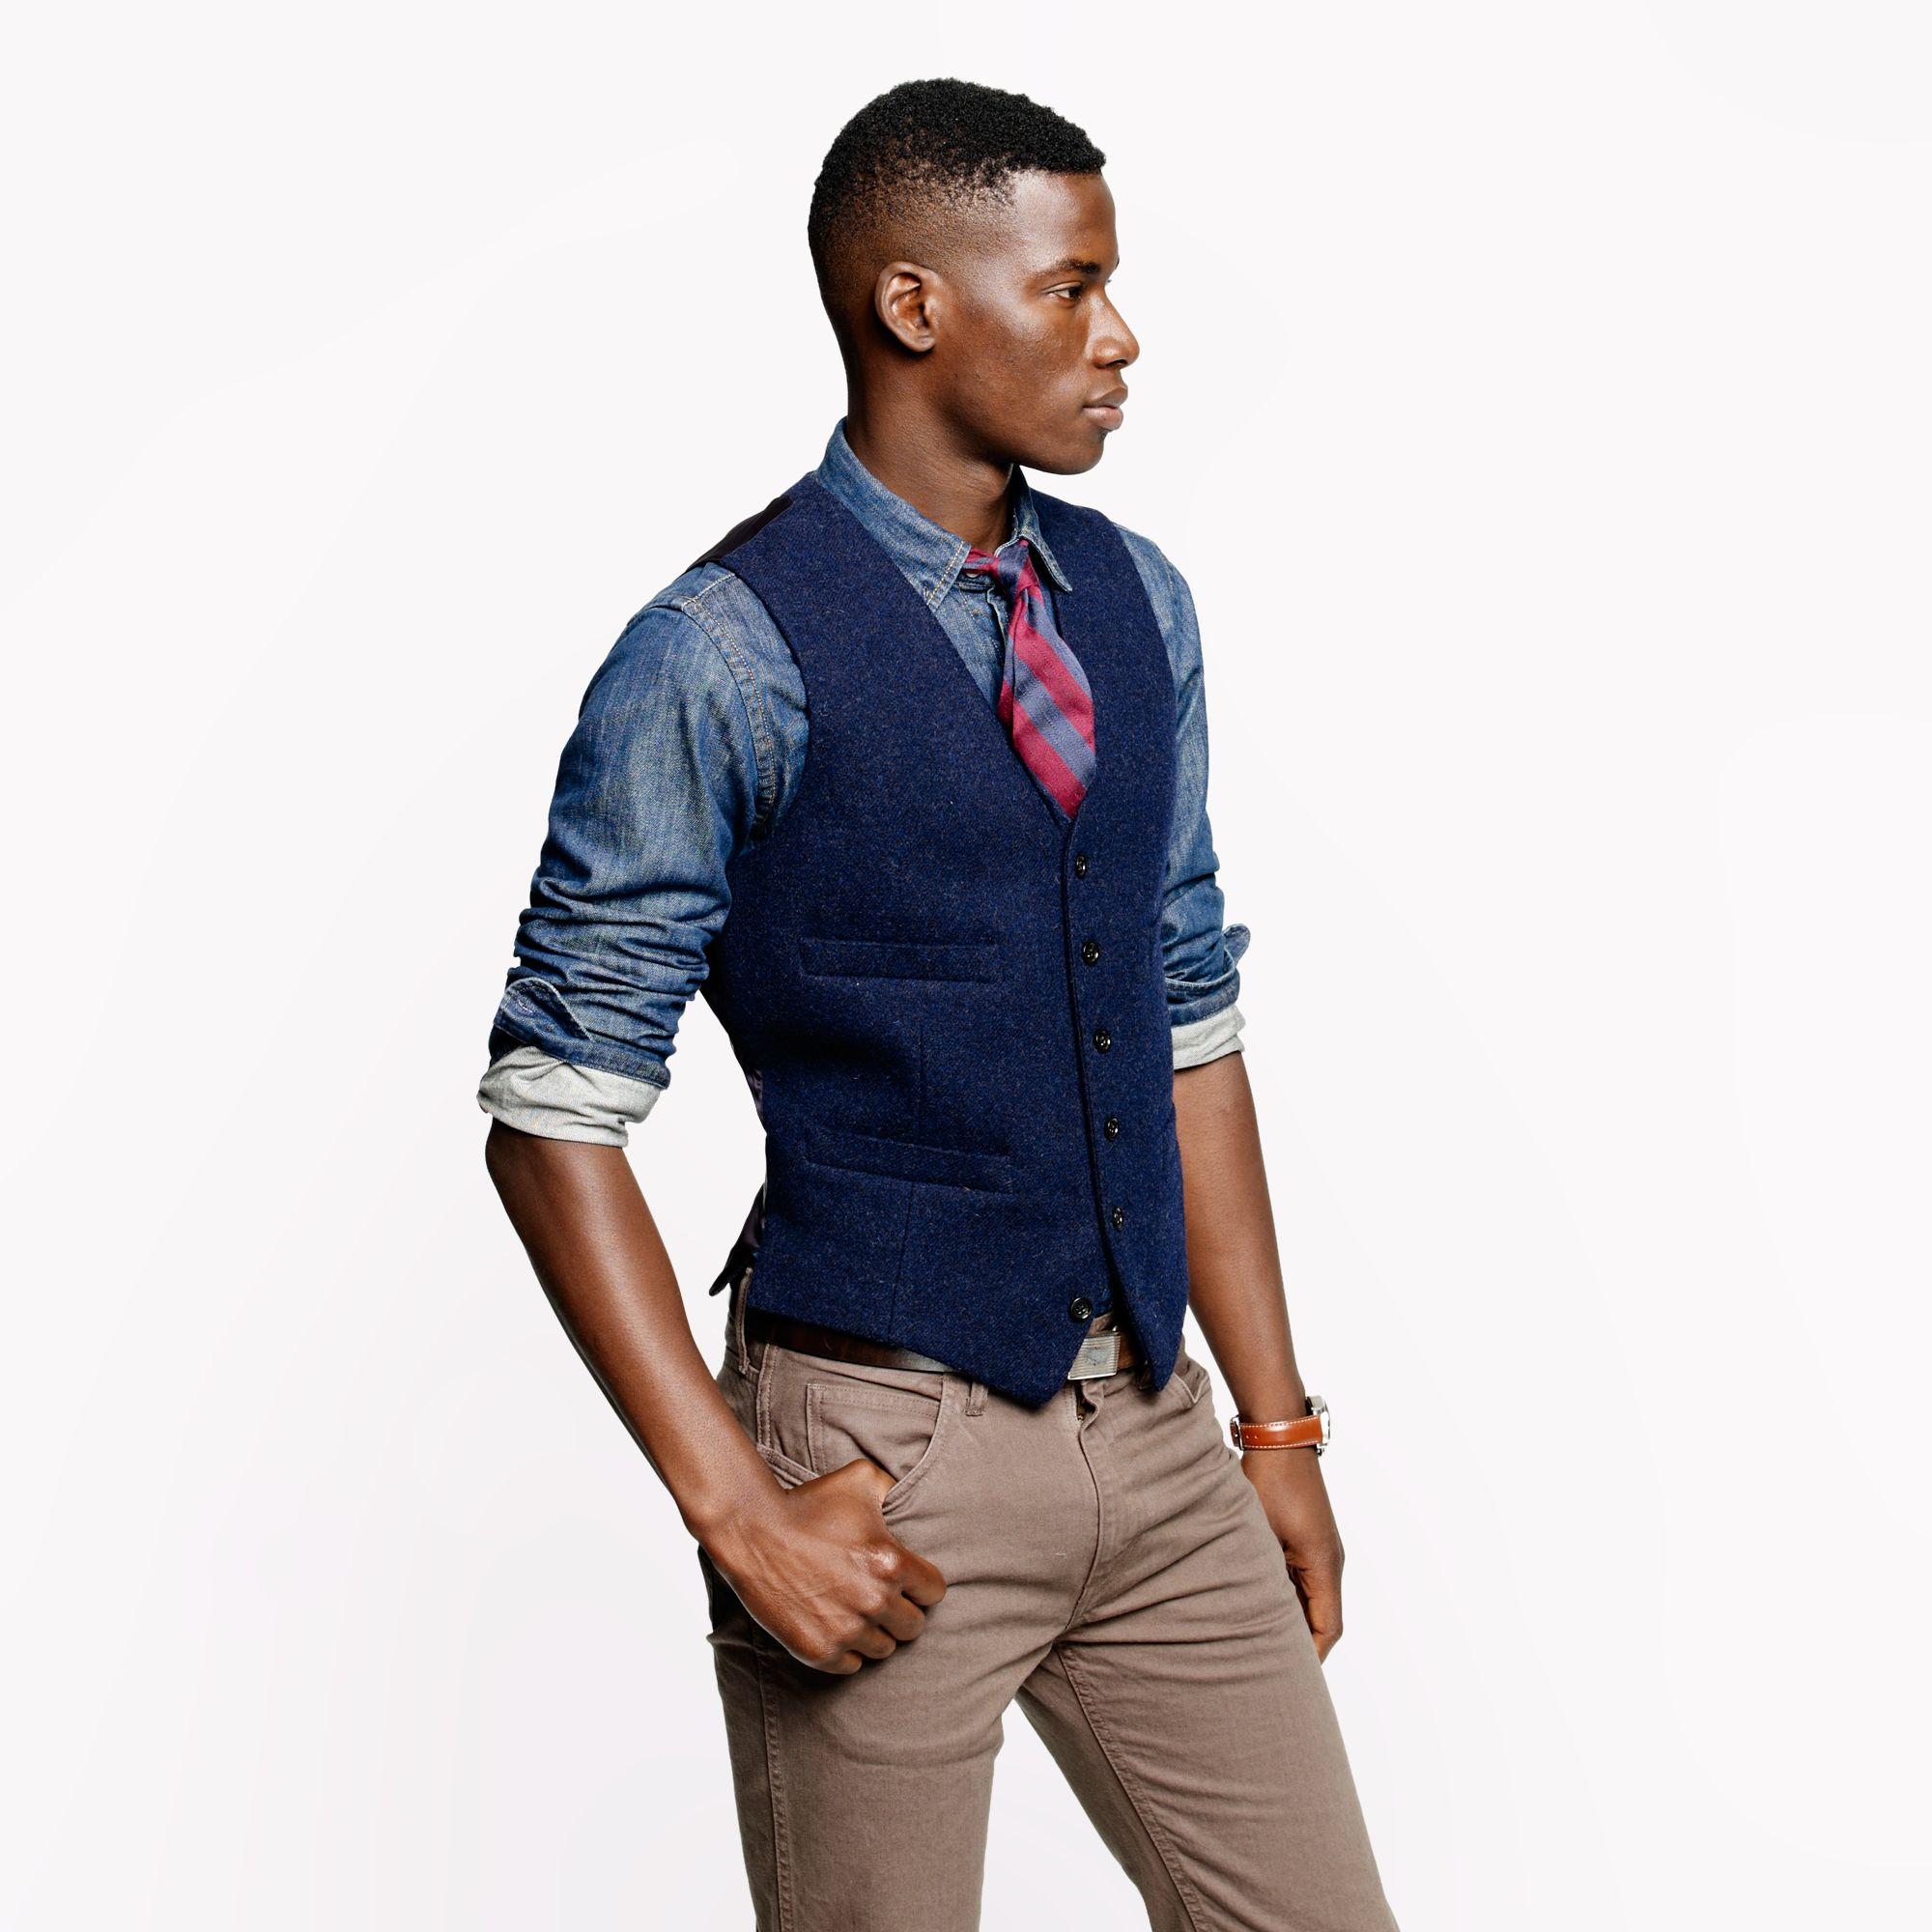 Shop for men's vests including dress vests, casual vests & vest jackets. See the latest styles & brands of vests for men from Men's Wearhouse.